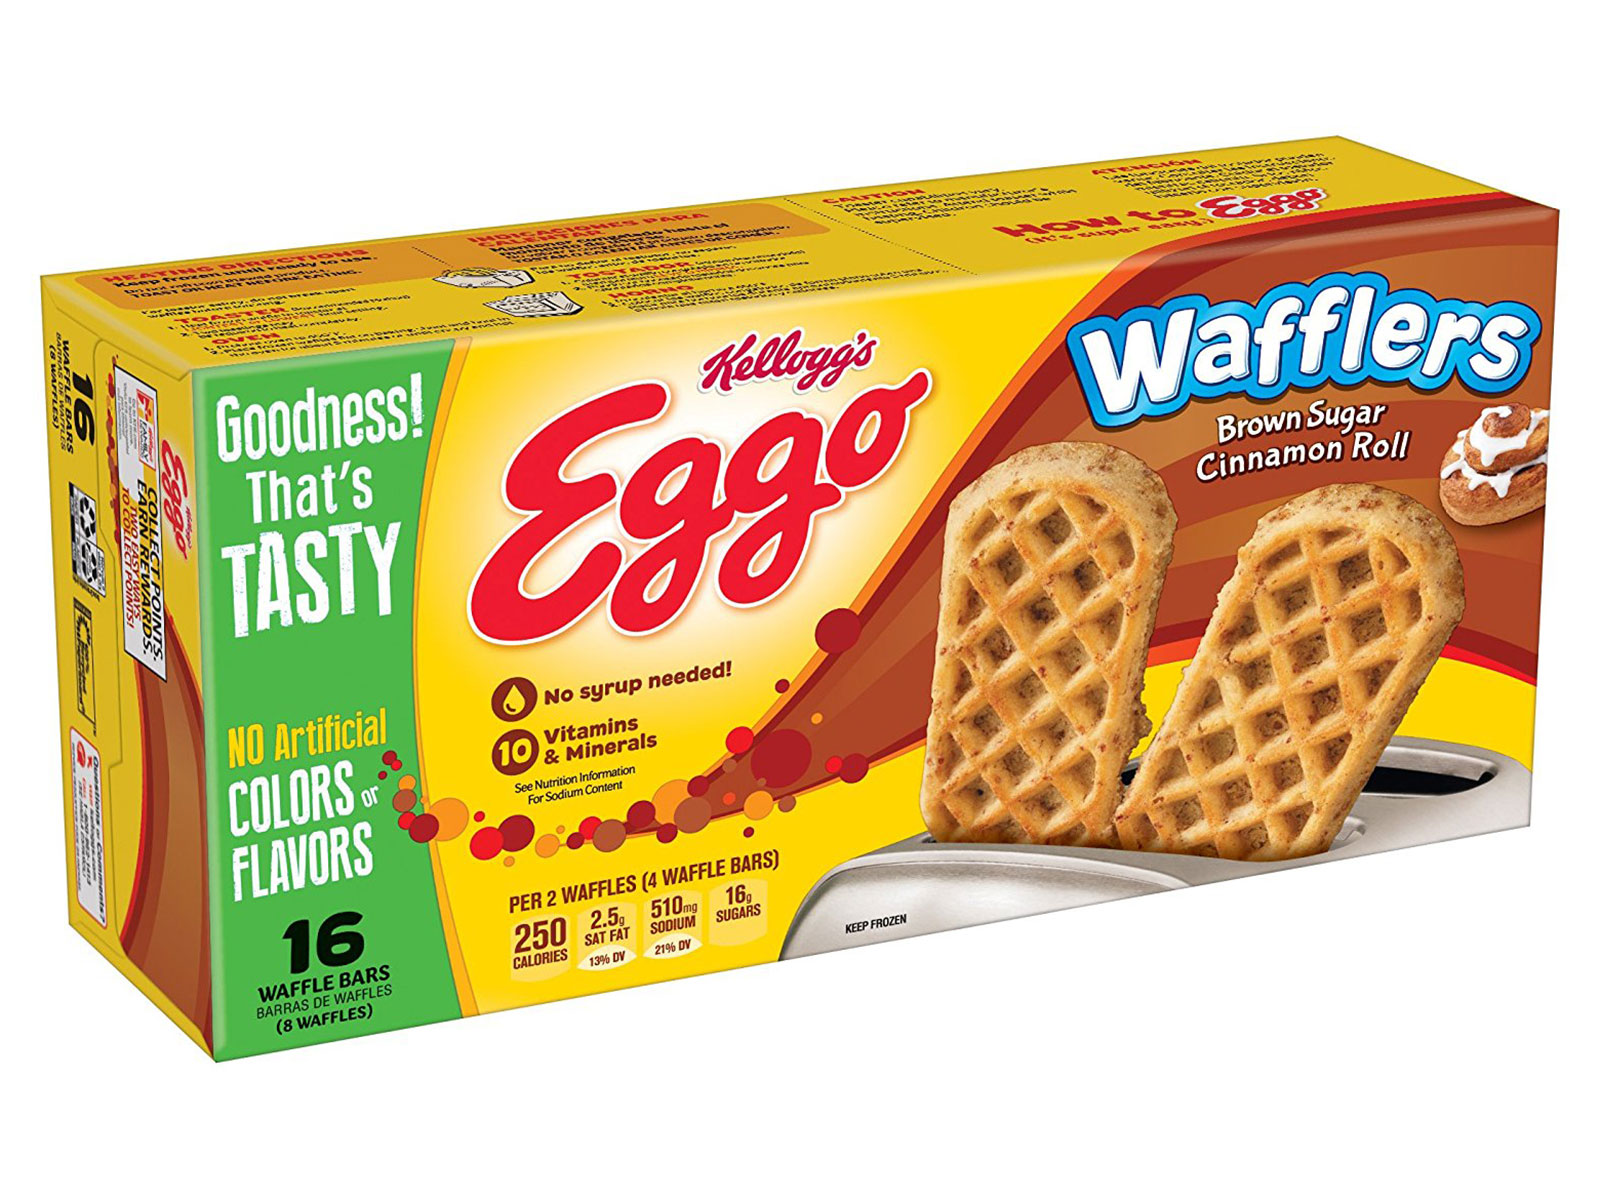 brown sugar wafflers from eggos